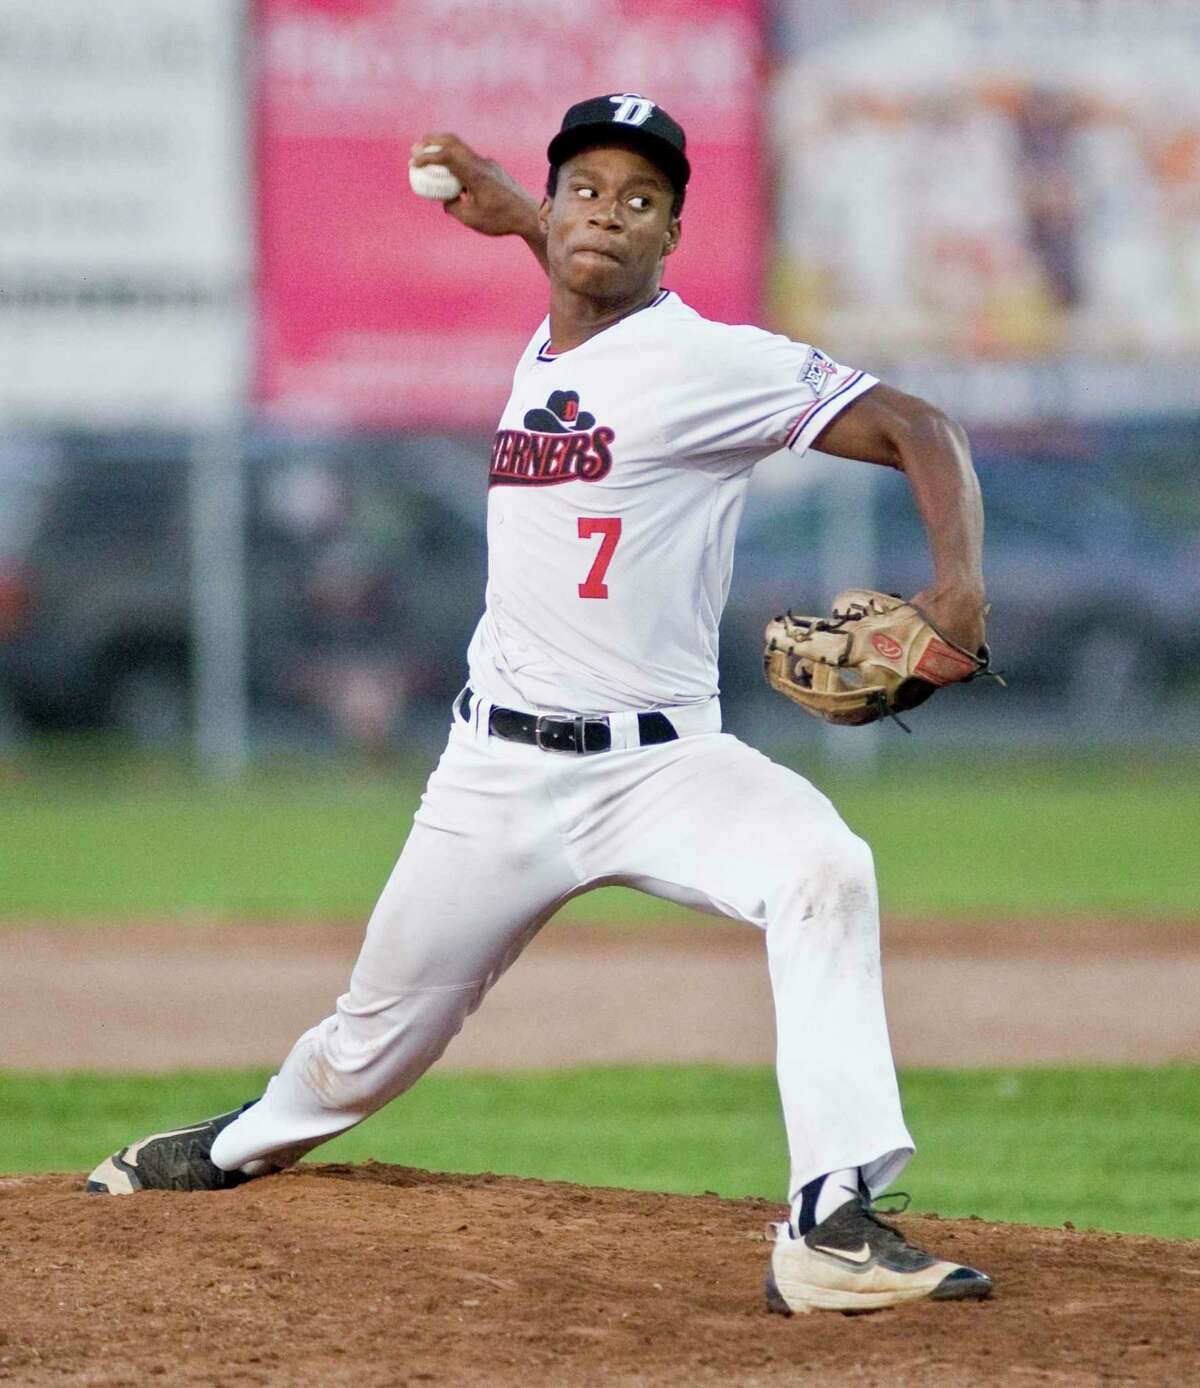 Former Danbury Westerners pitcher Josiah Gray is currently in Triple-A and is the Los Angeles Dodgers' No. 2 overall prospect.